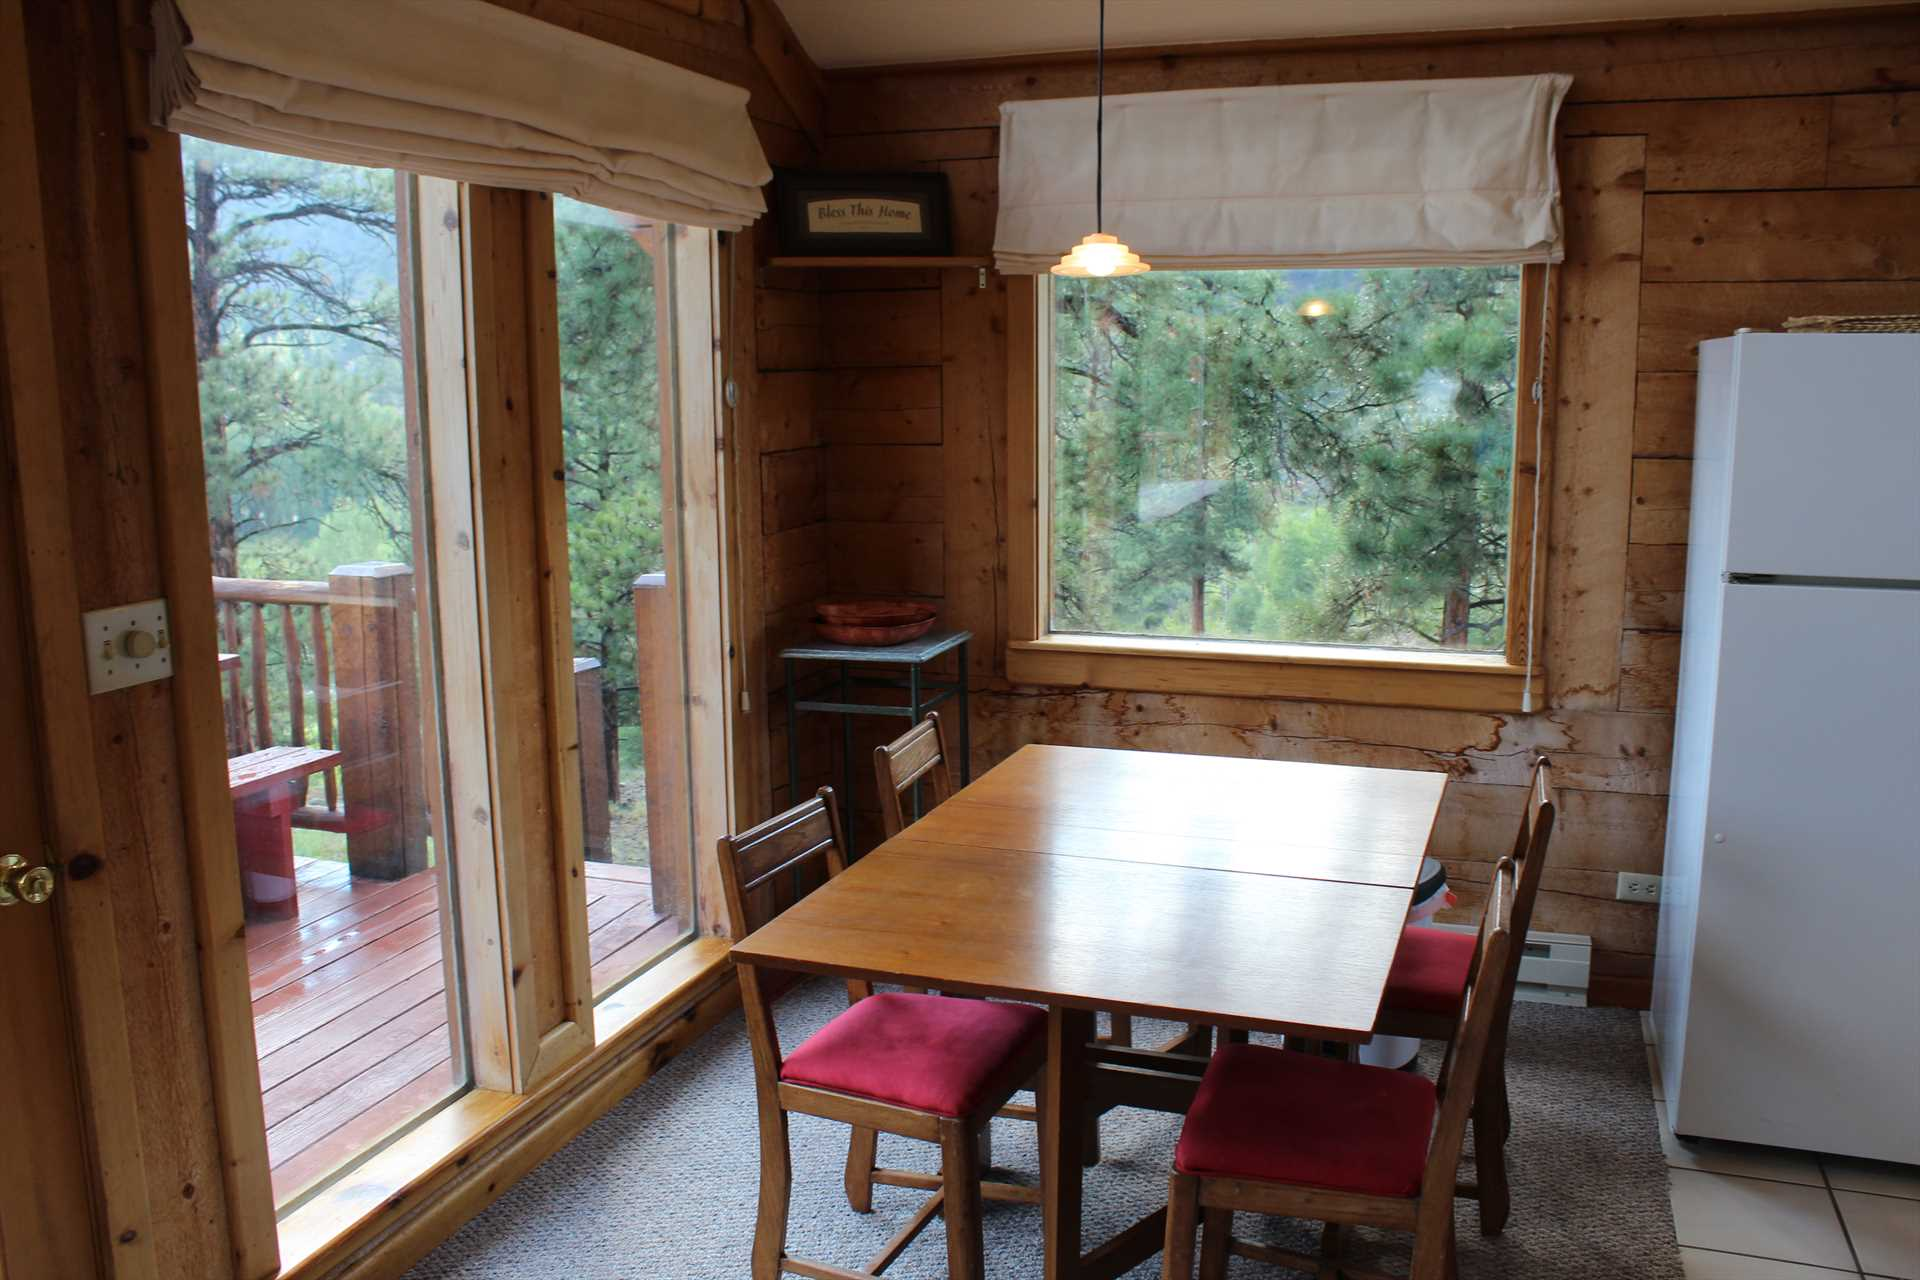 Dining Area with Great Views Out the Large Windows